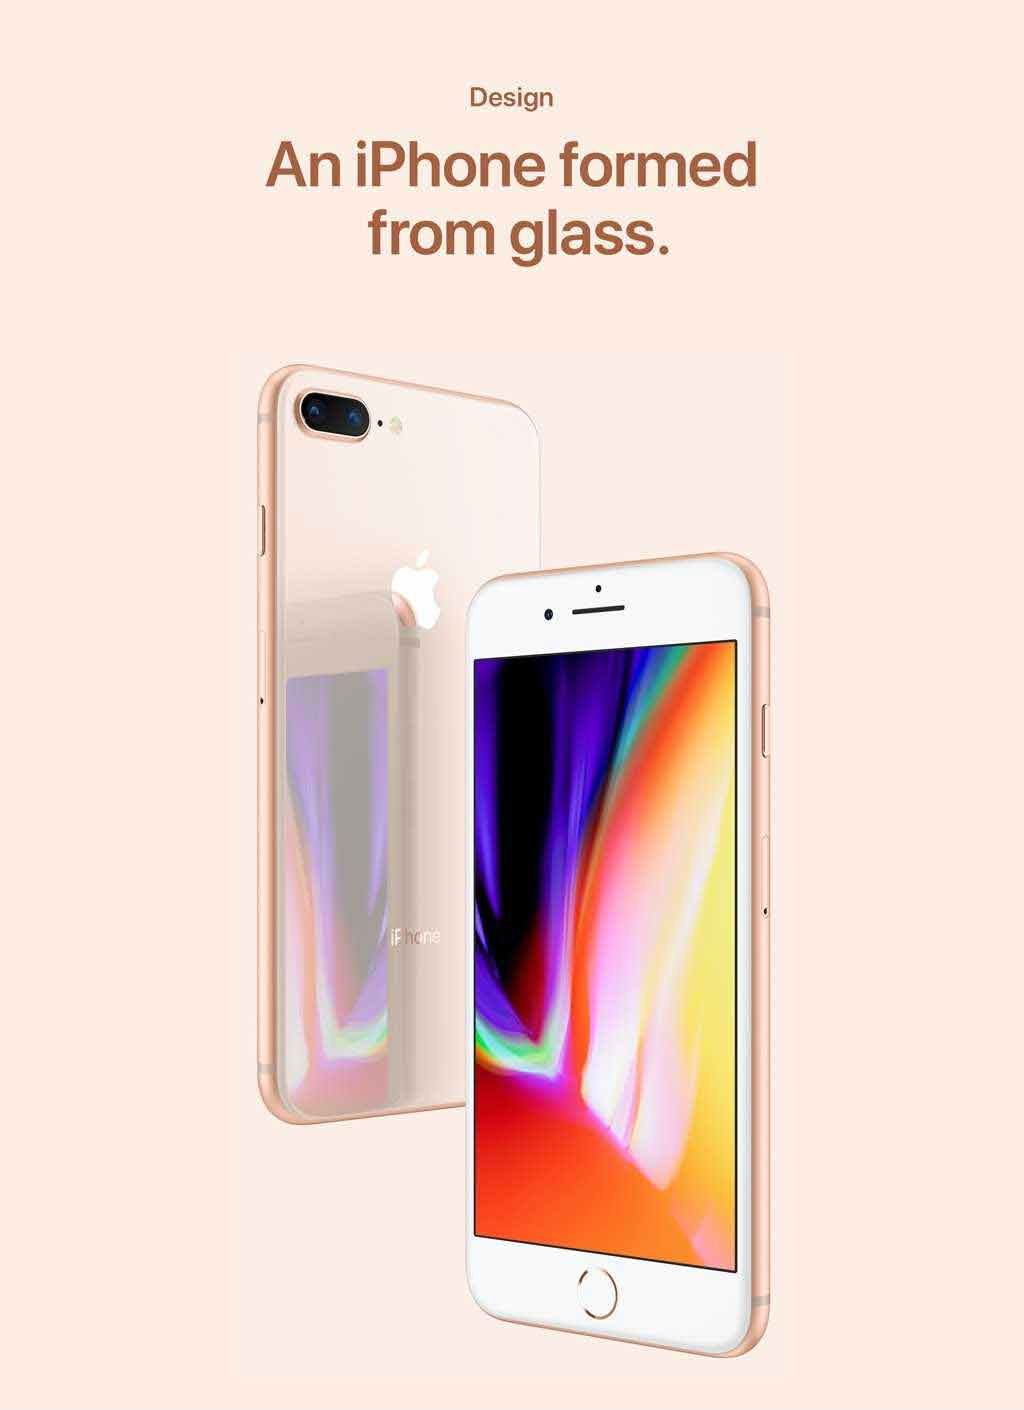 Design An iPhone formed from glass